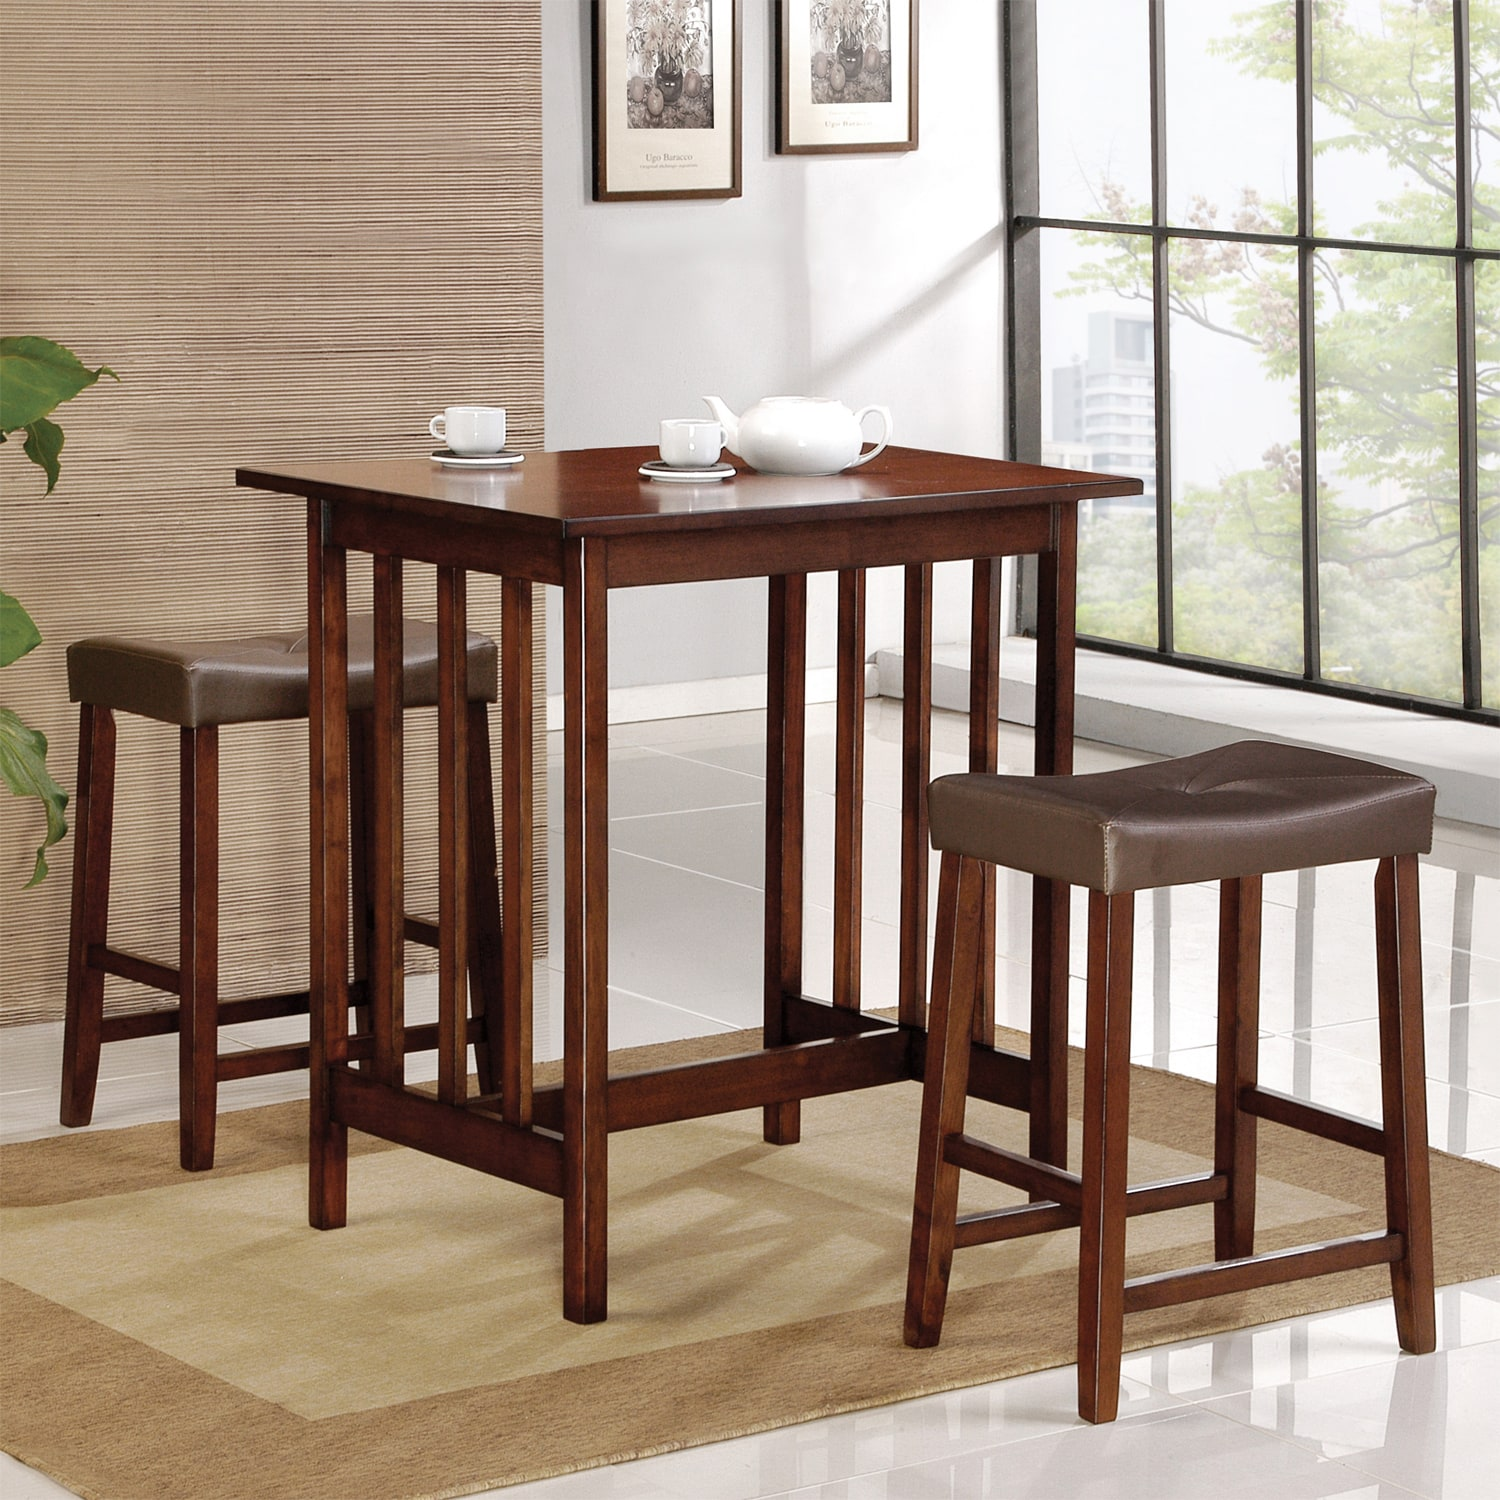 AT HOME by O ETHAN HOME Nova Cherry 3-piece Kitchen Counter Height Dining Set at Sears.com